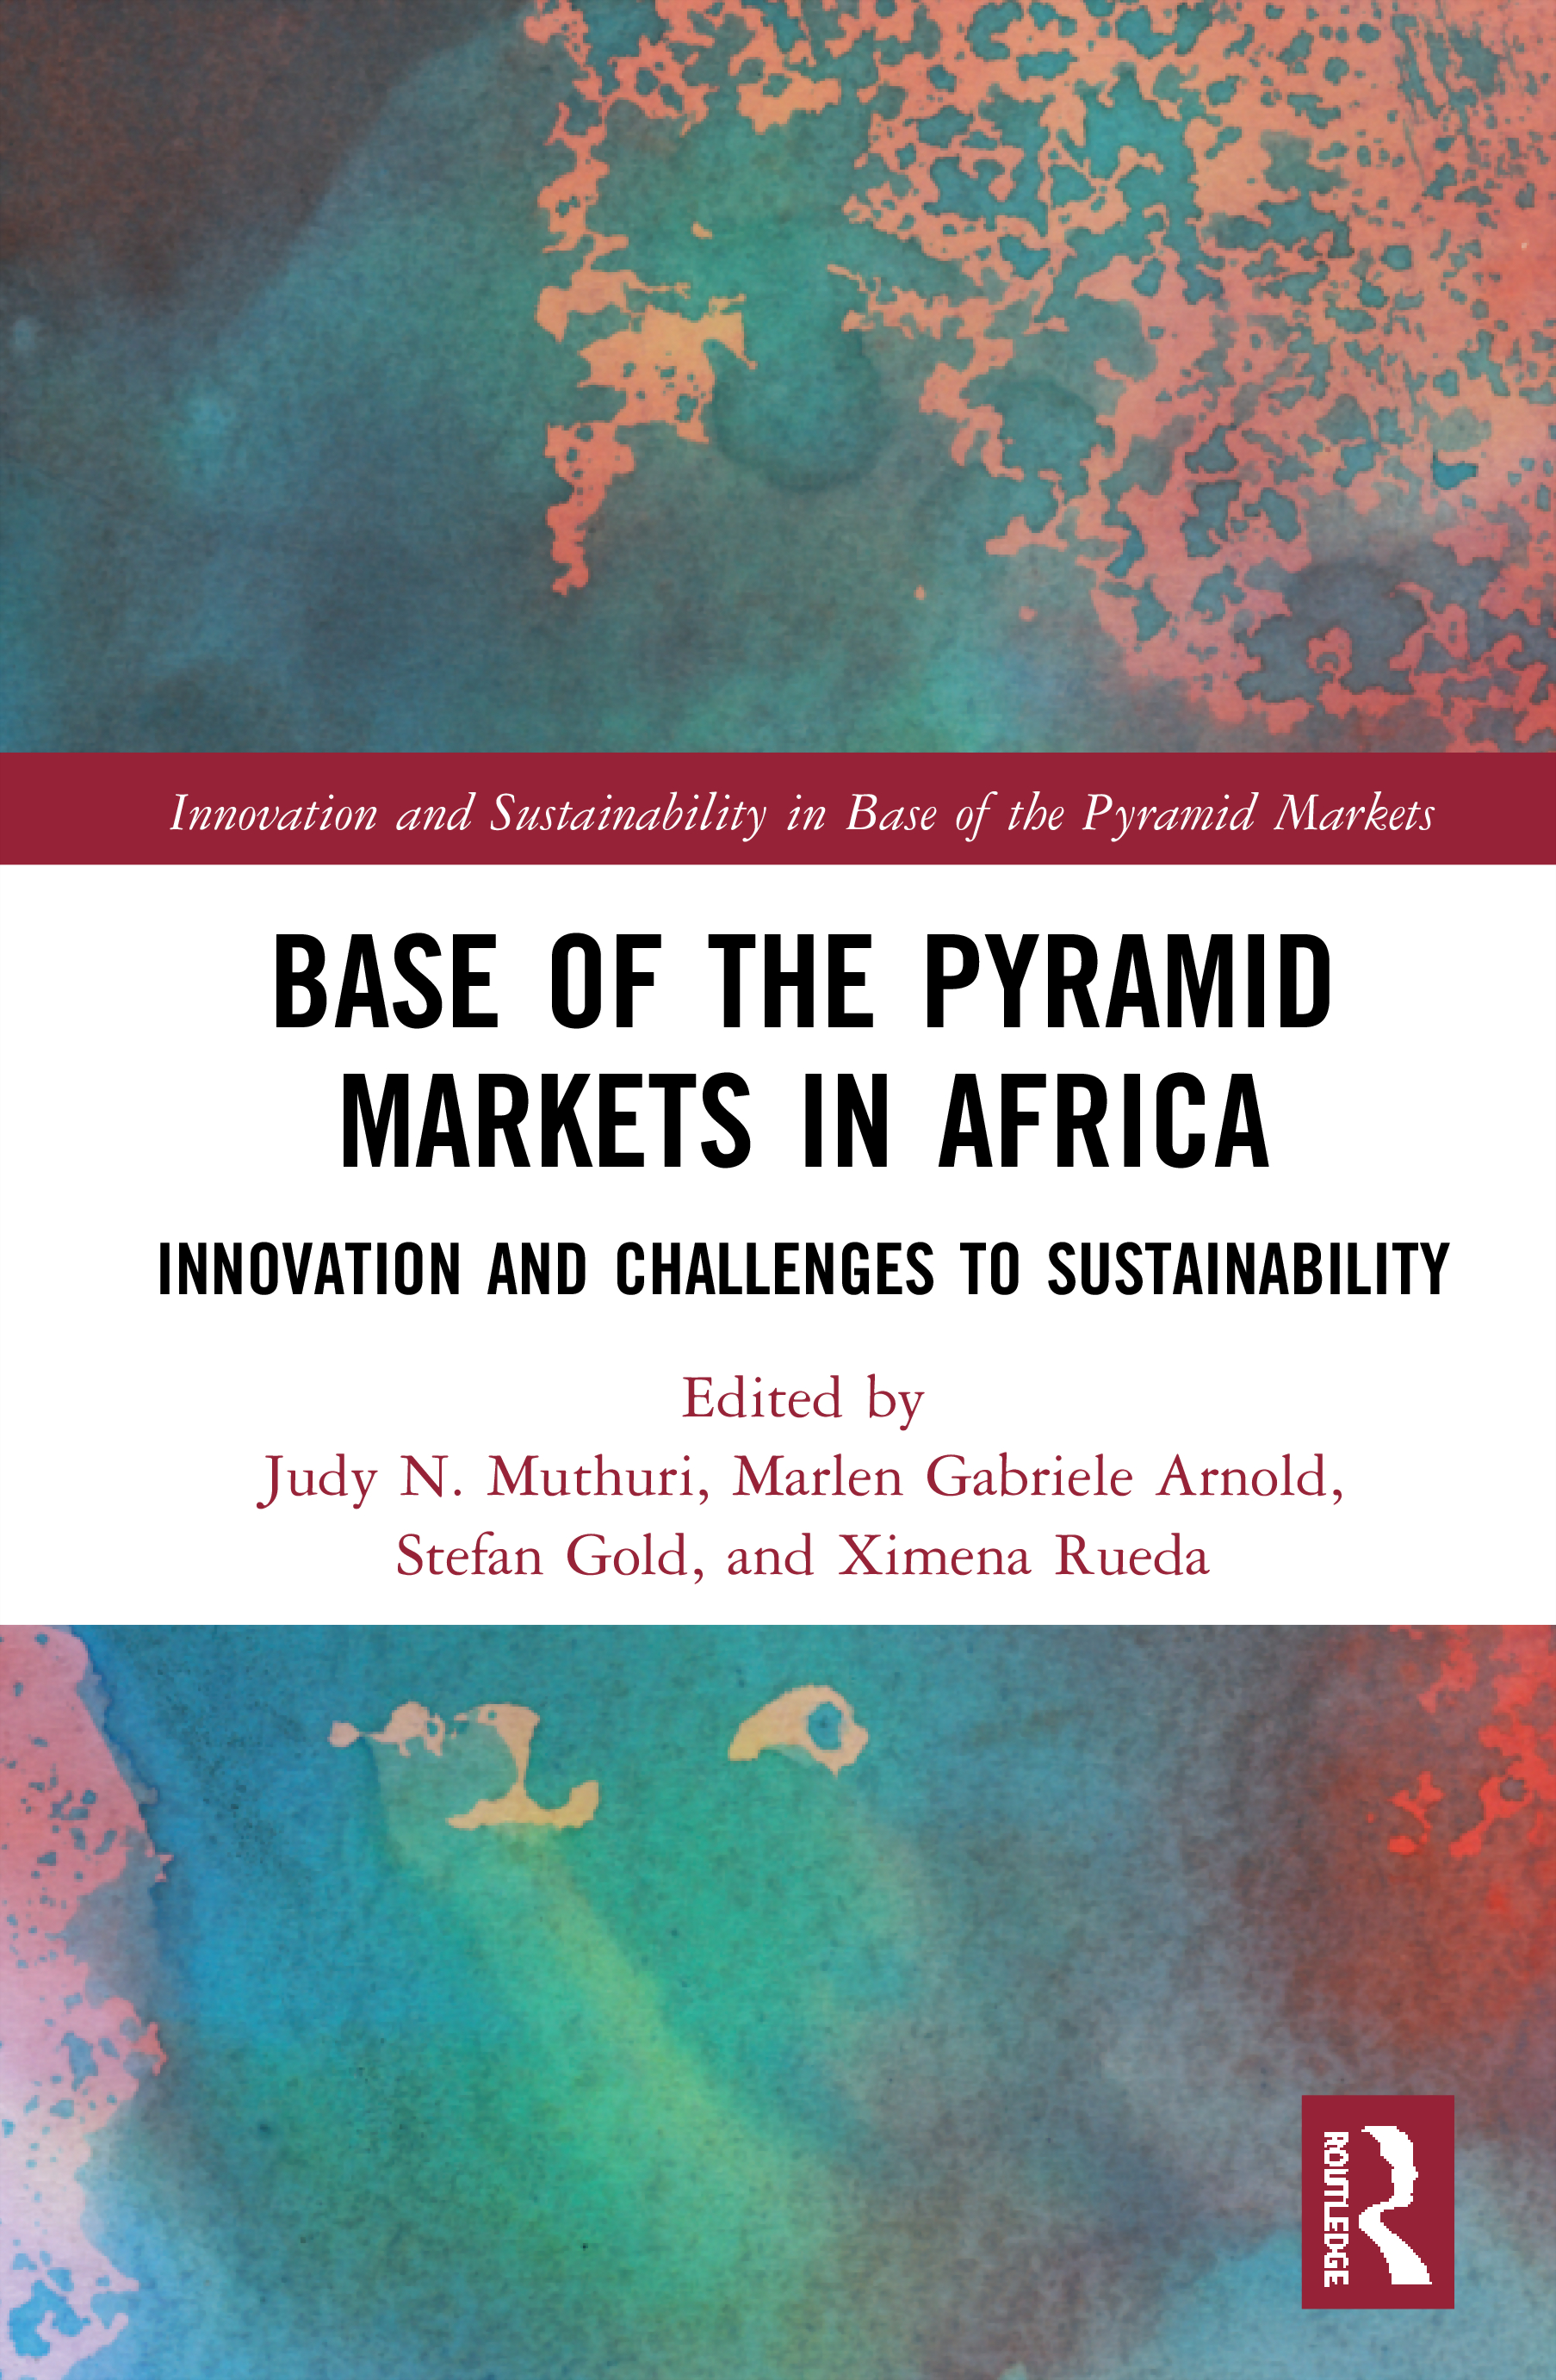 Base of the Pyramid Markets in Africa: Innovation and Challenges to Sustainability book cover